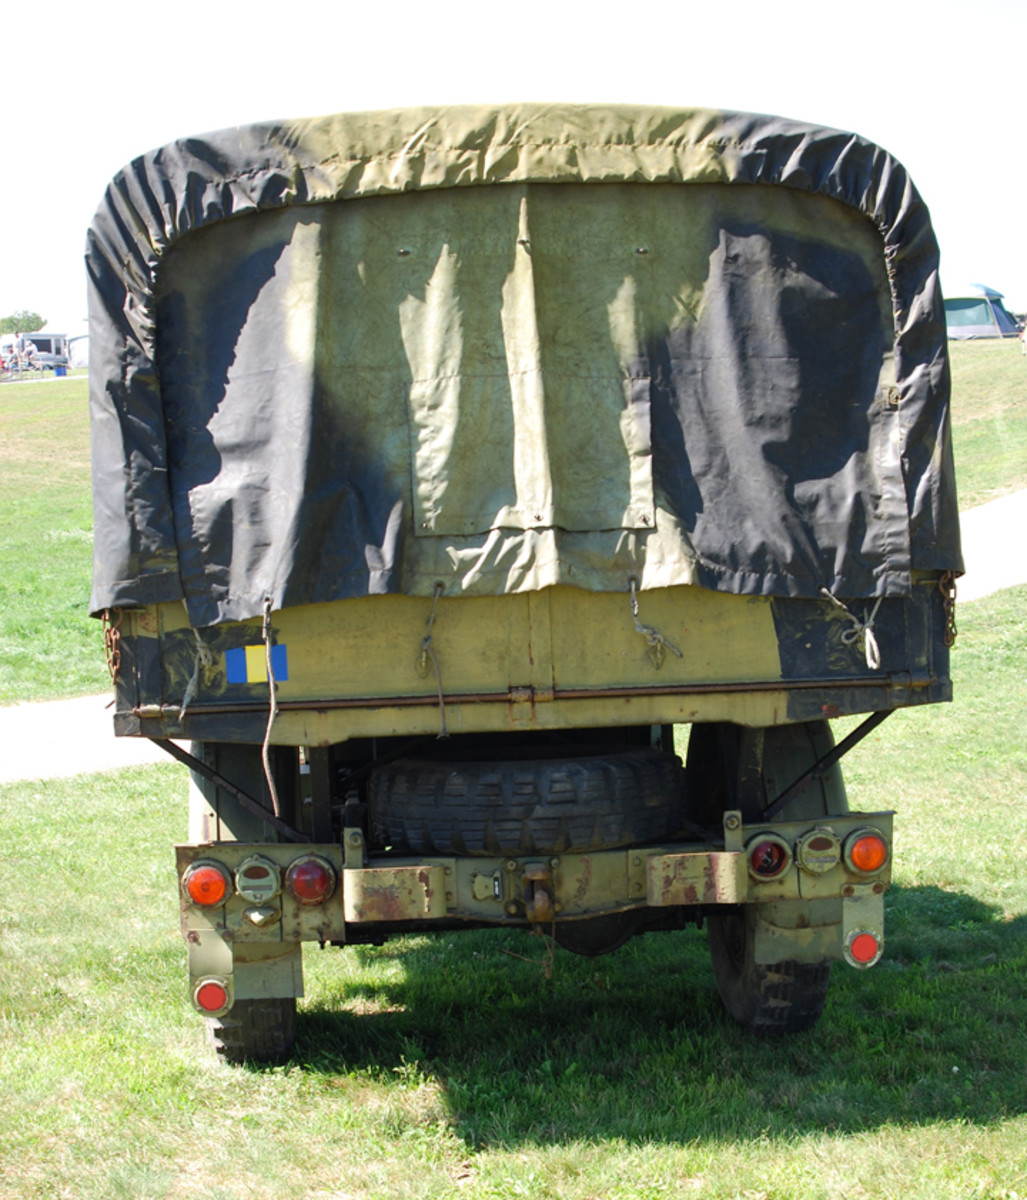 Rear view showing Danish Army marker lights and spare tire.